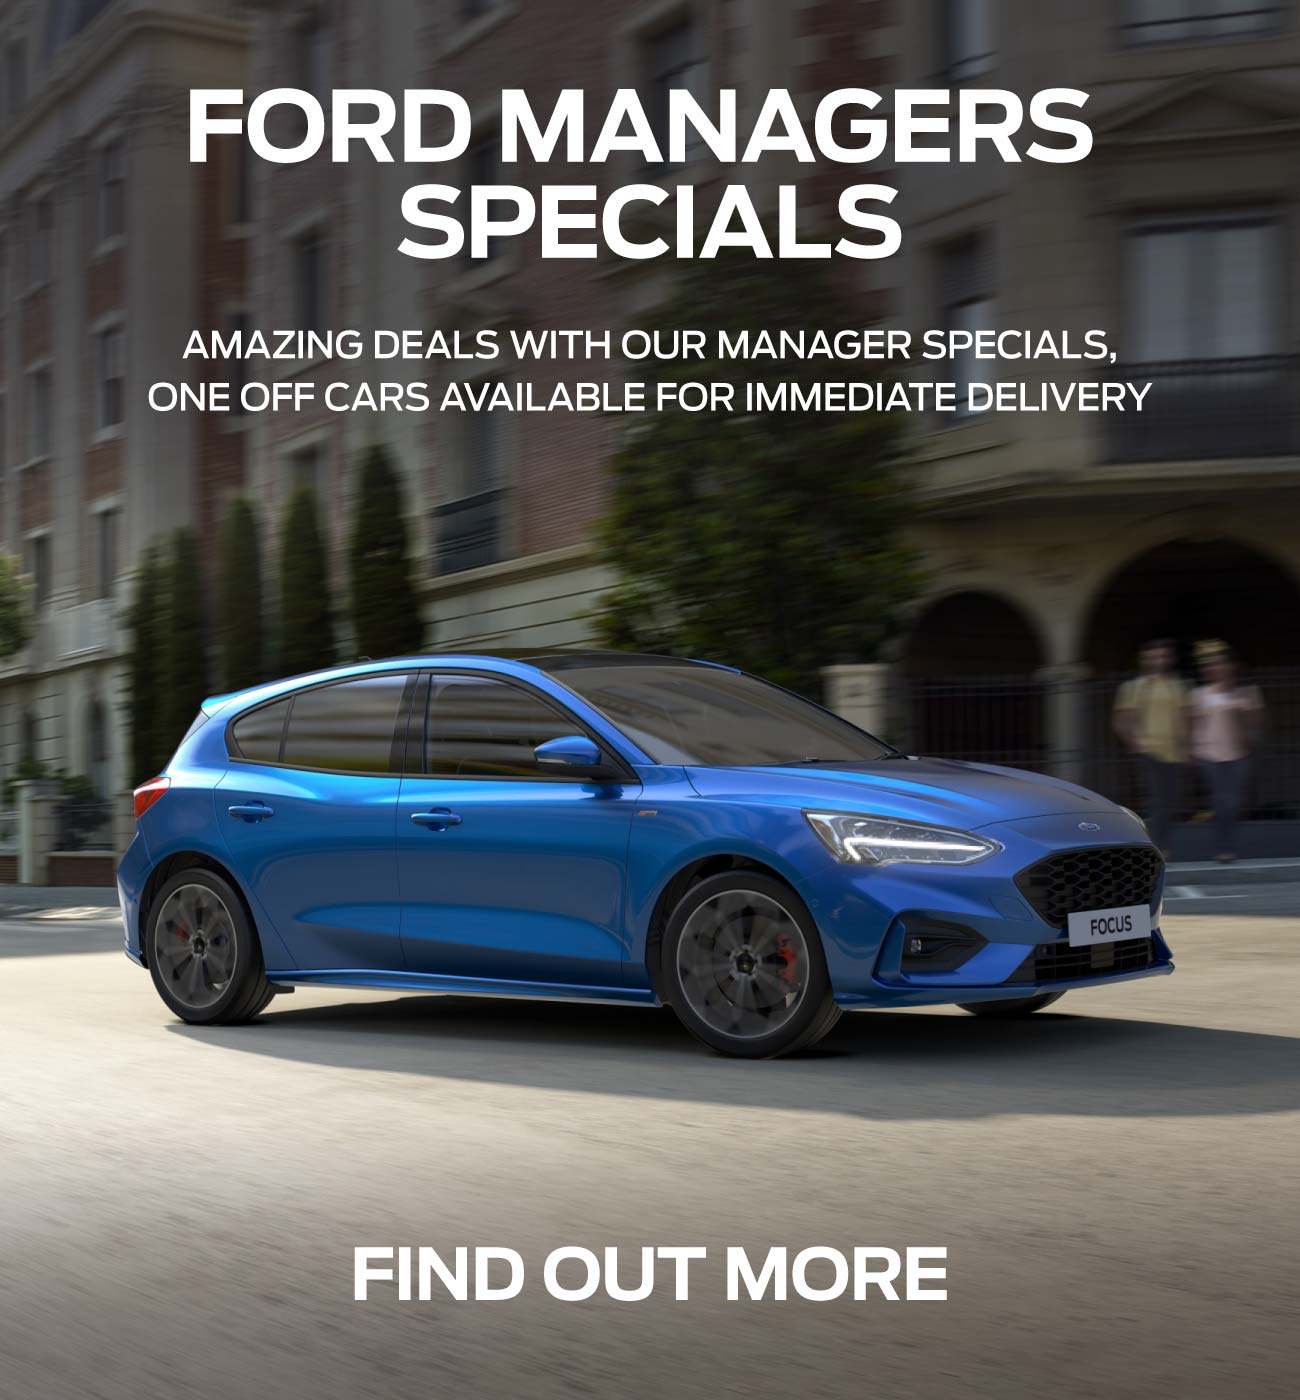 [Ford Generic] Managers Specials 080119 Banner 2